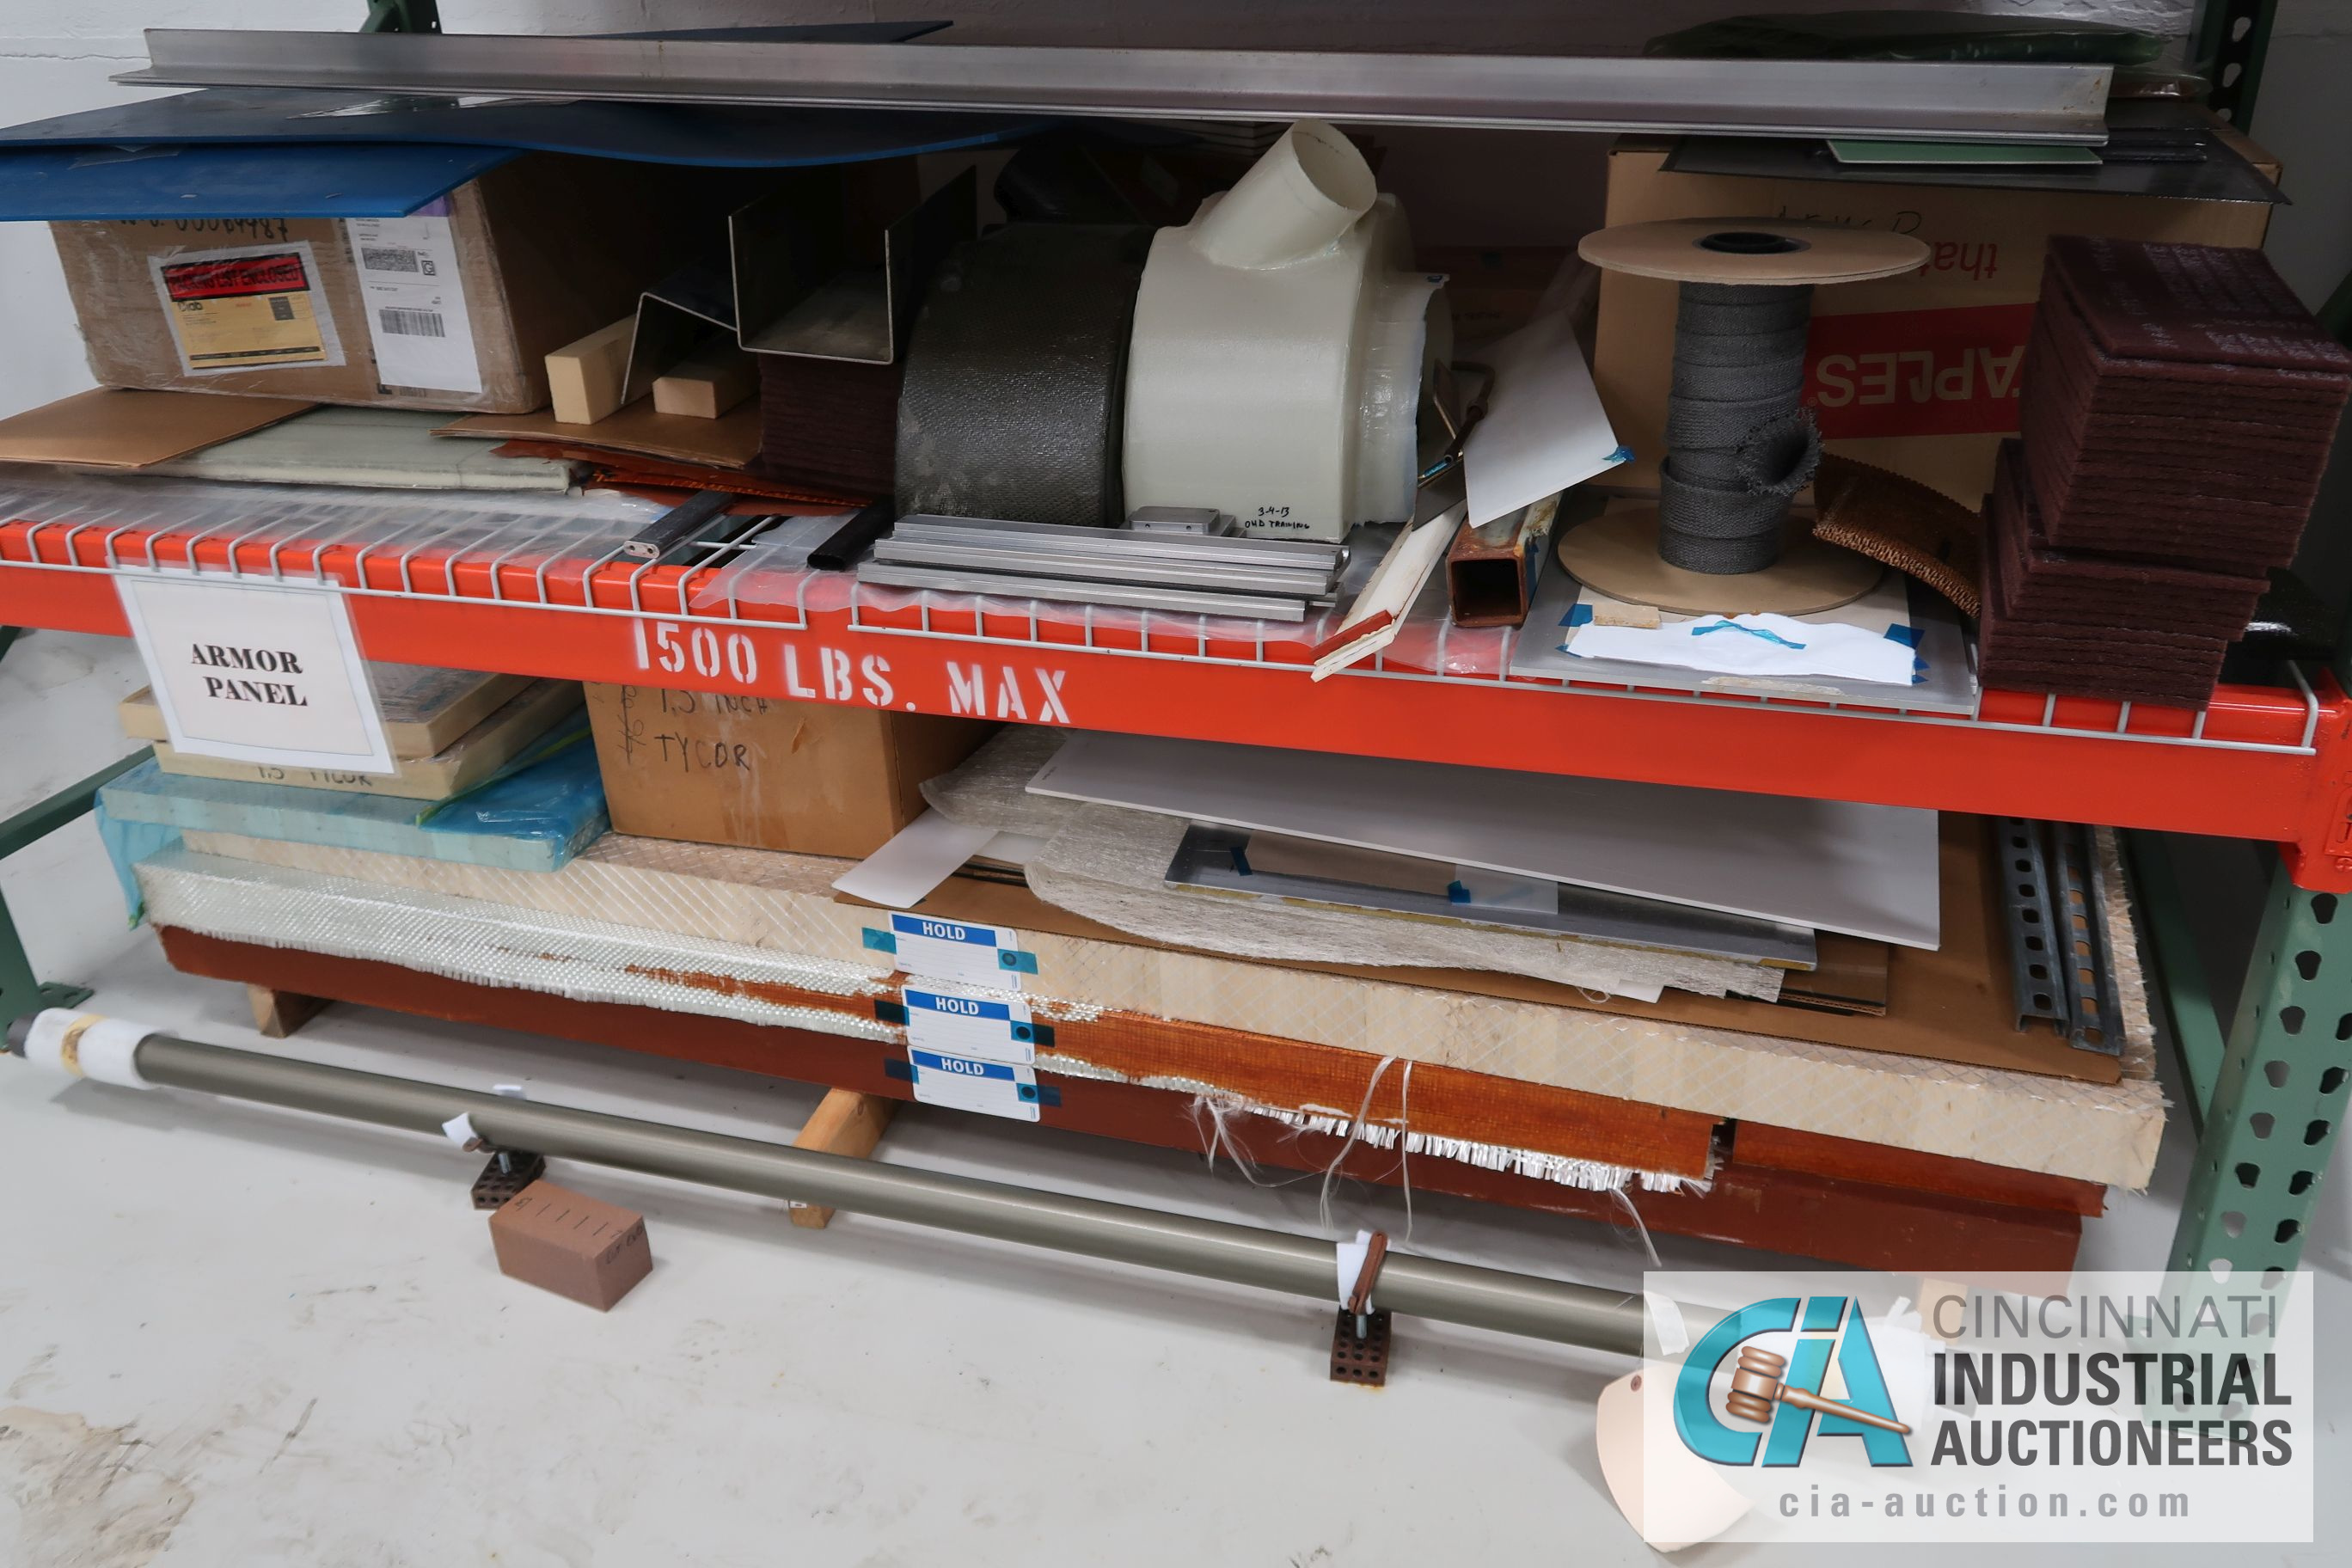 TWO-DOOR TENNSCO CABINET WITH MISCELLANEOUS CONTENTS AND CONTENTS ON RACK - COMPOSITE MATERIAL AND - Image 5 of 5